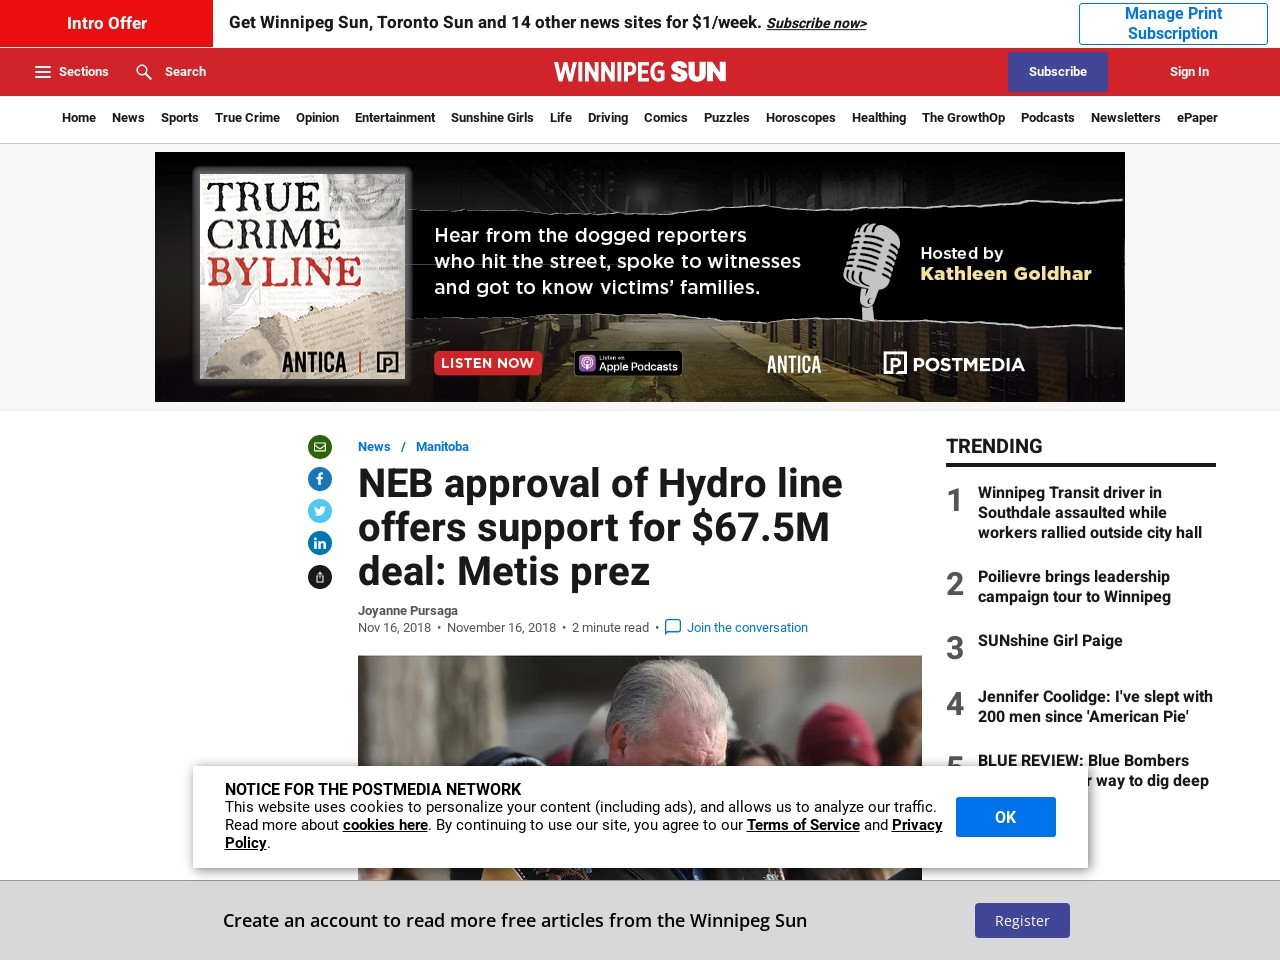 NEB approval of Hydro line offers support for $67.5M deal: Metis prez